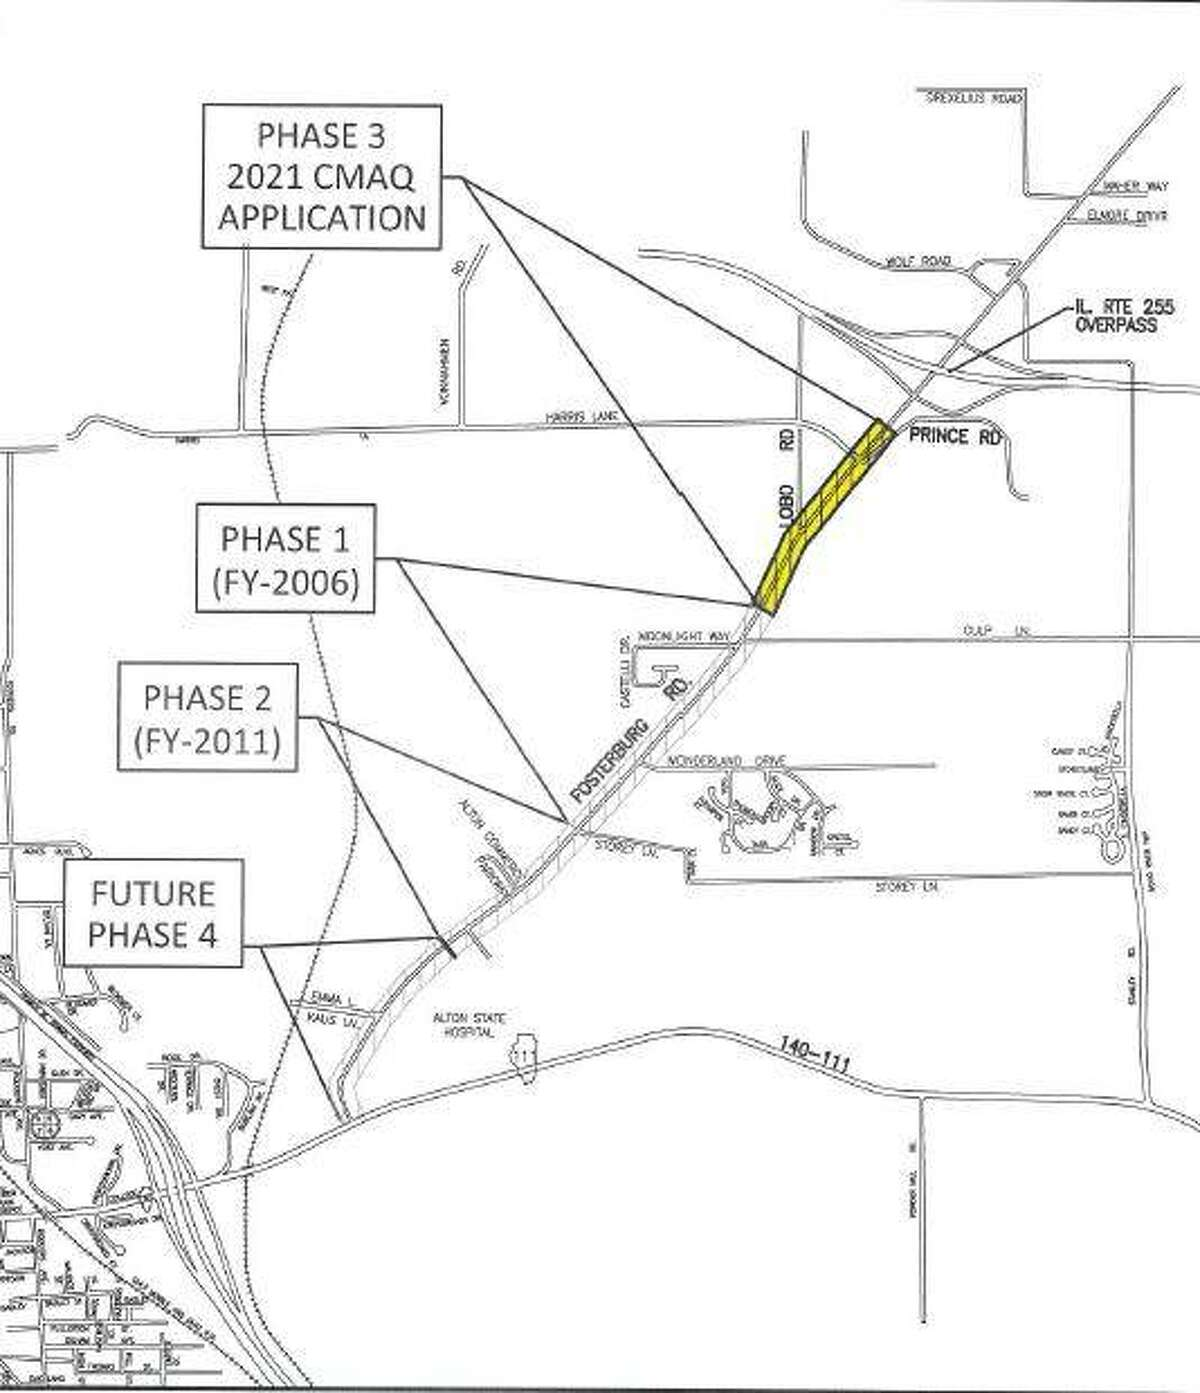 Alton officials are sharing a schematic view of planned work on Fosterburg Road. The area of construction is marked.